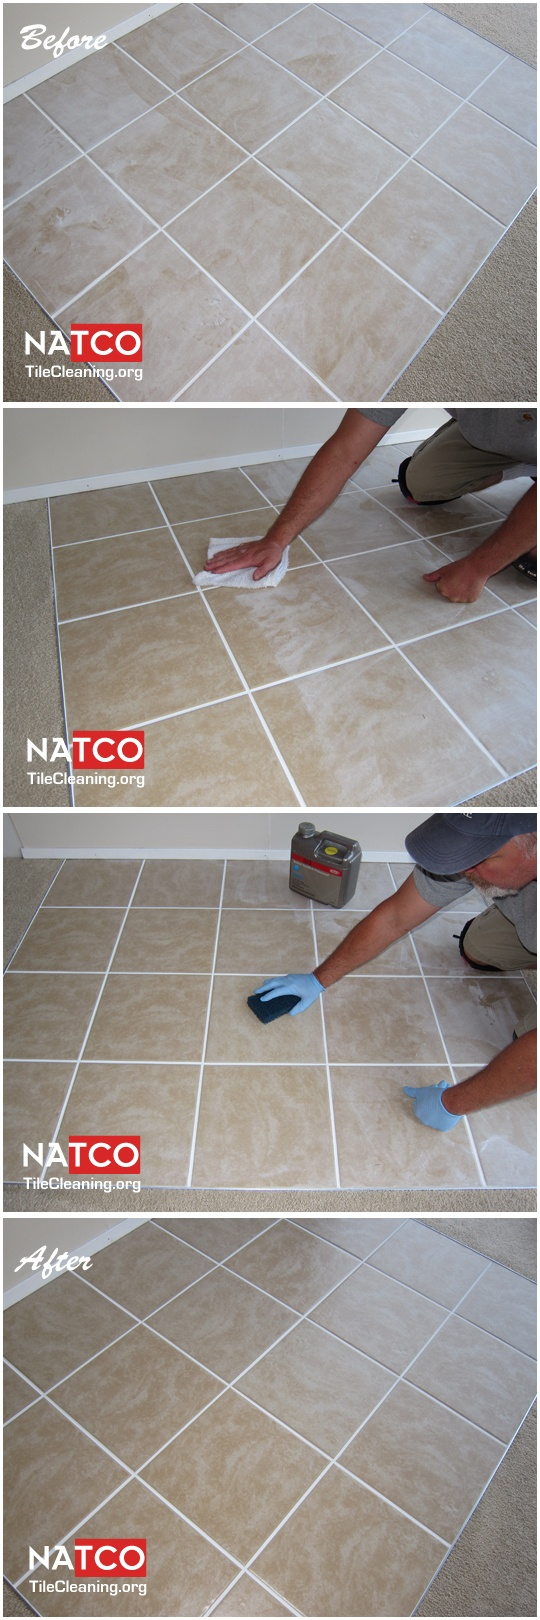 Best 25 how to remove grout ideas on pinterest bathroom caulk how to remove cement based grout haze dailygadgetfo Images